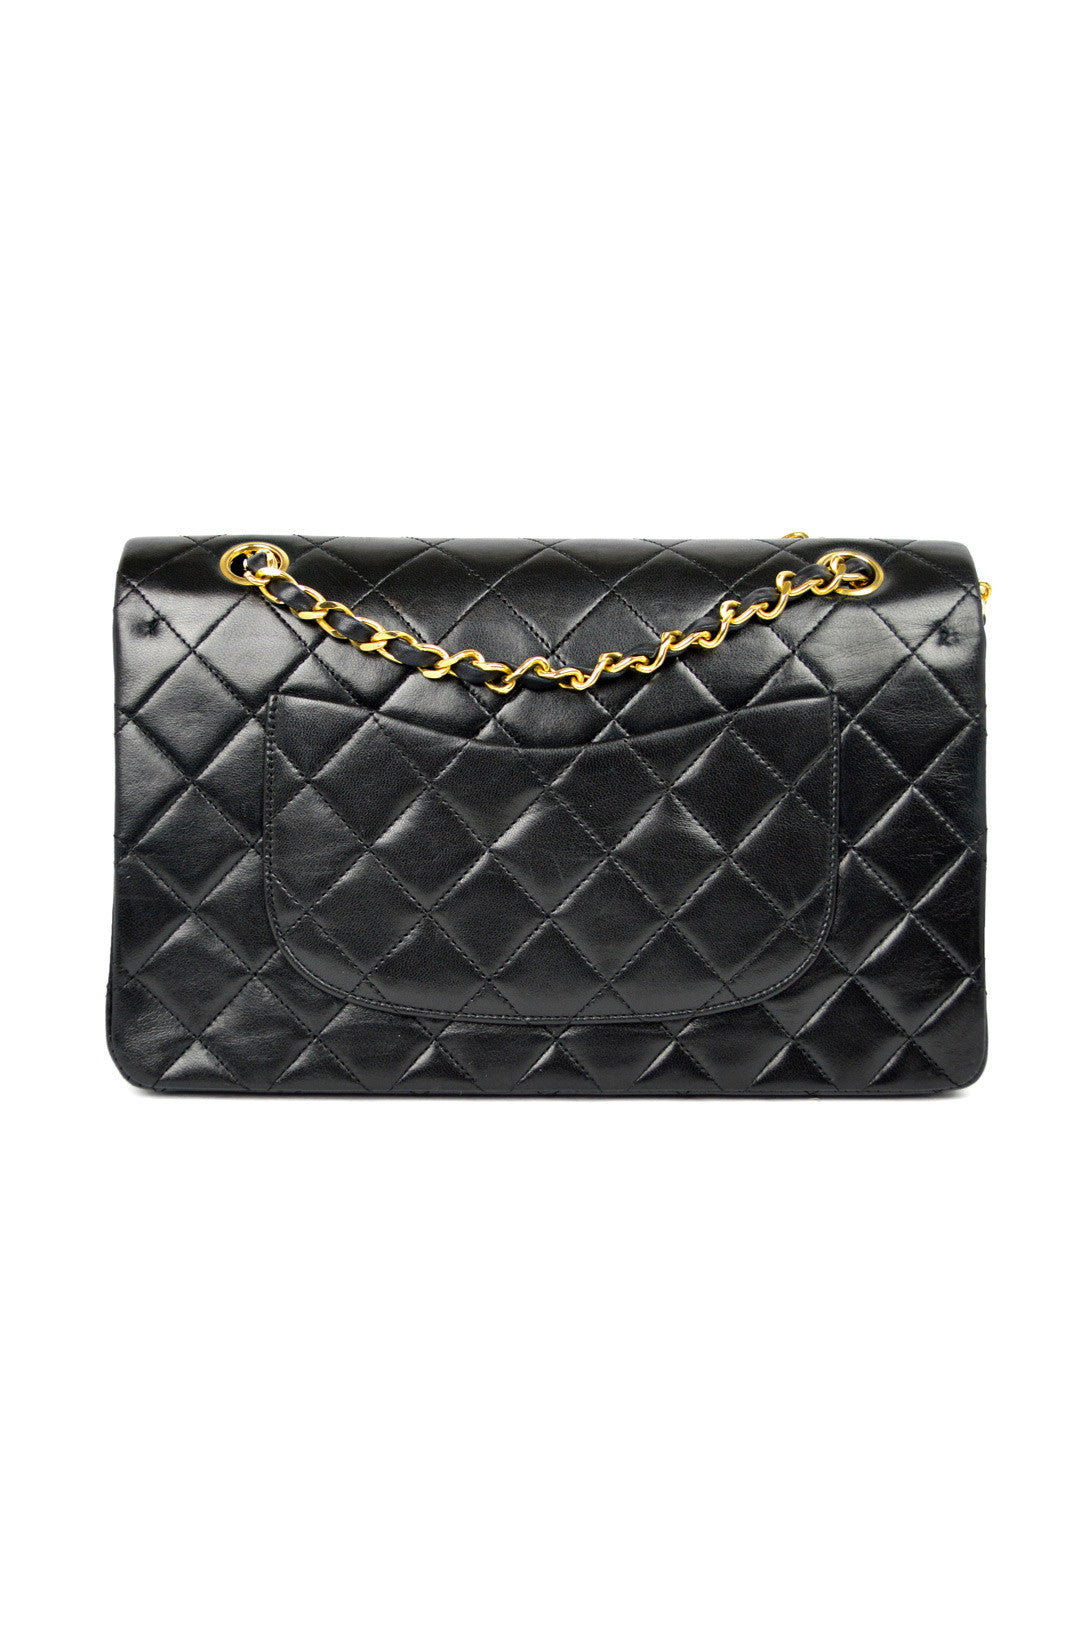 "Black Lambskin Classic 2.55 10"" Double Flap Bag (ON LAYAWAY)"